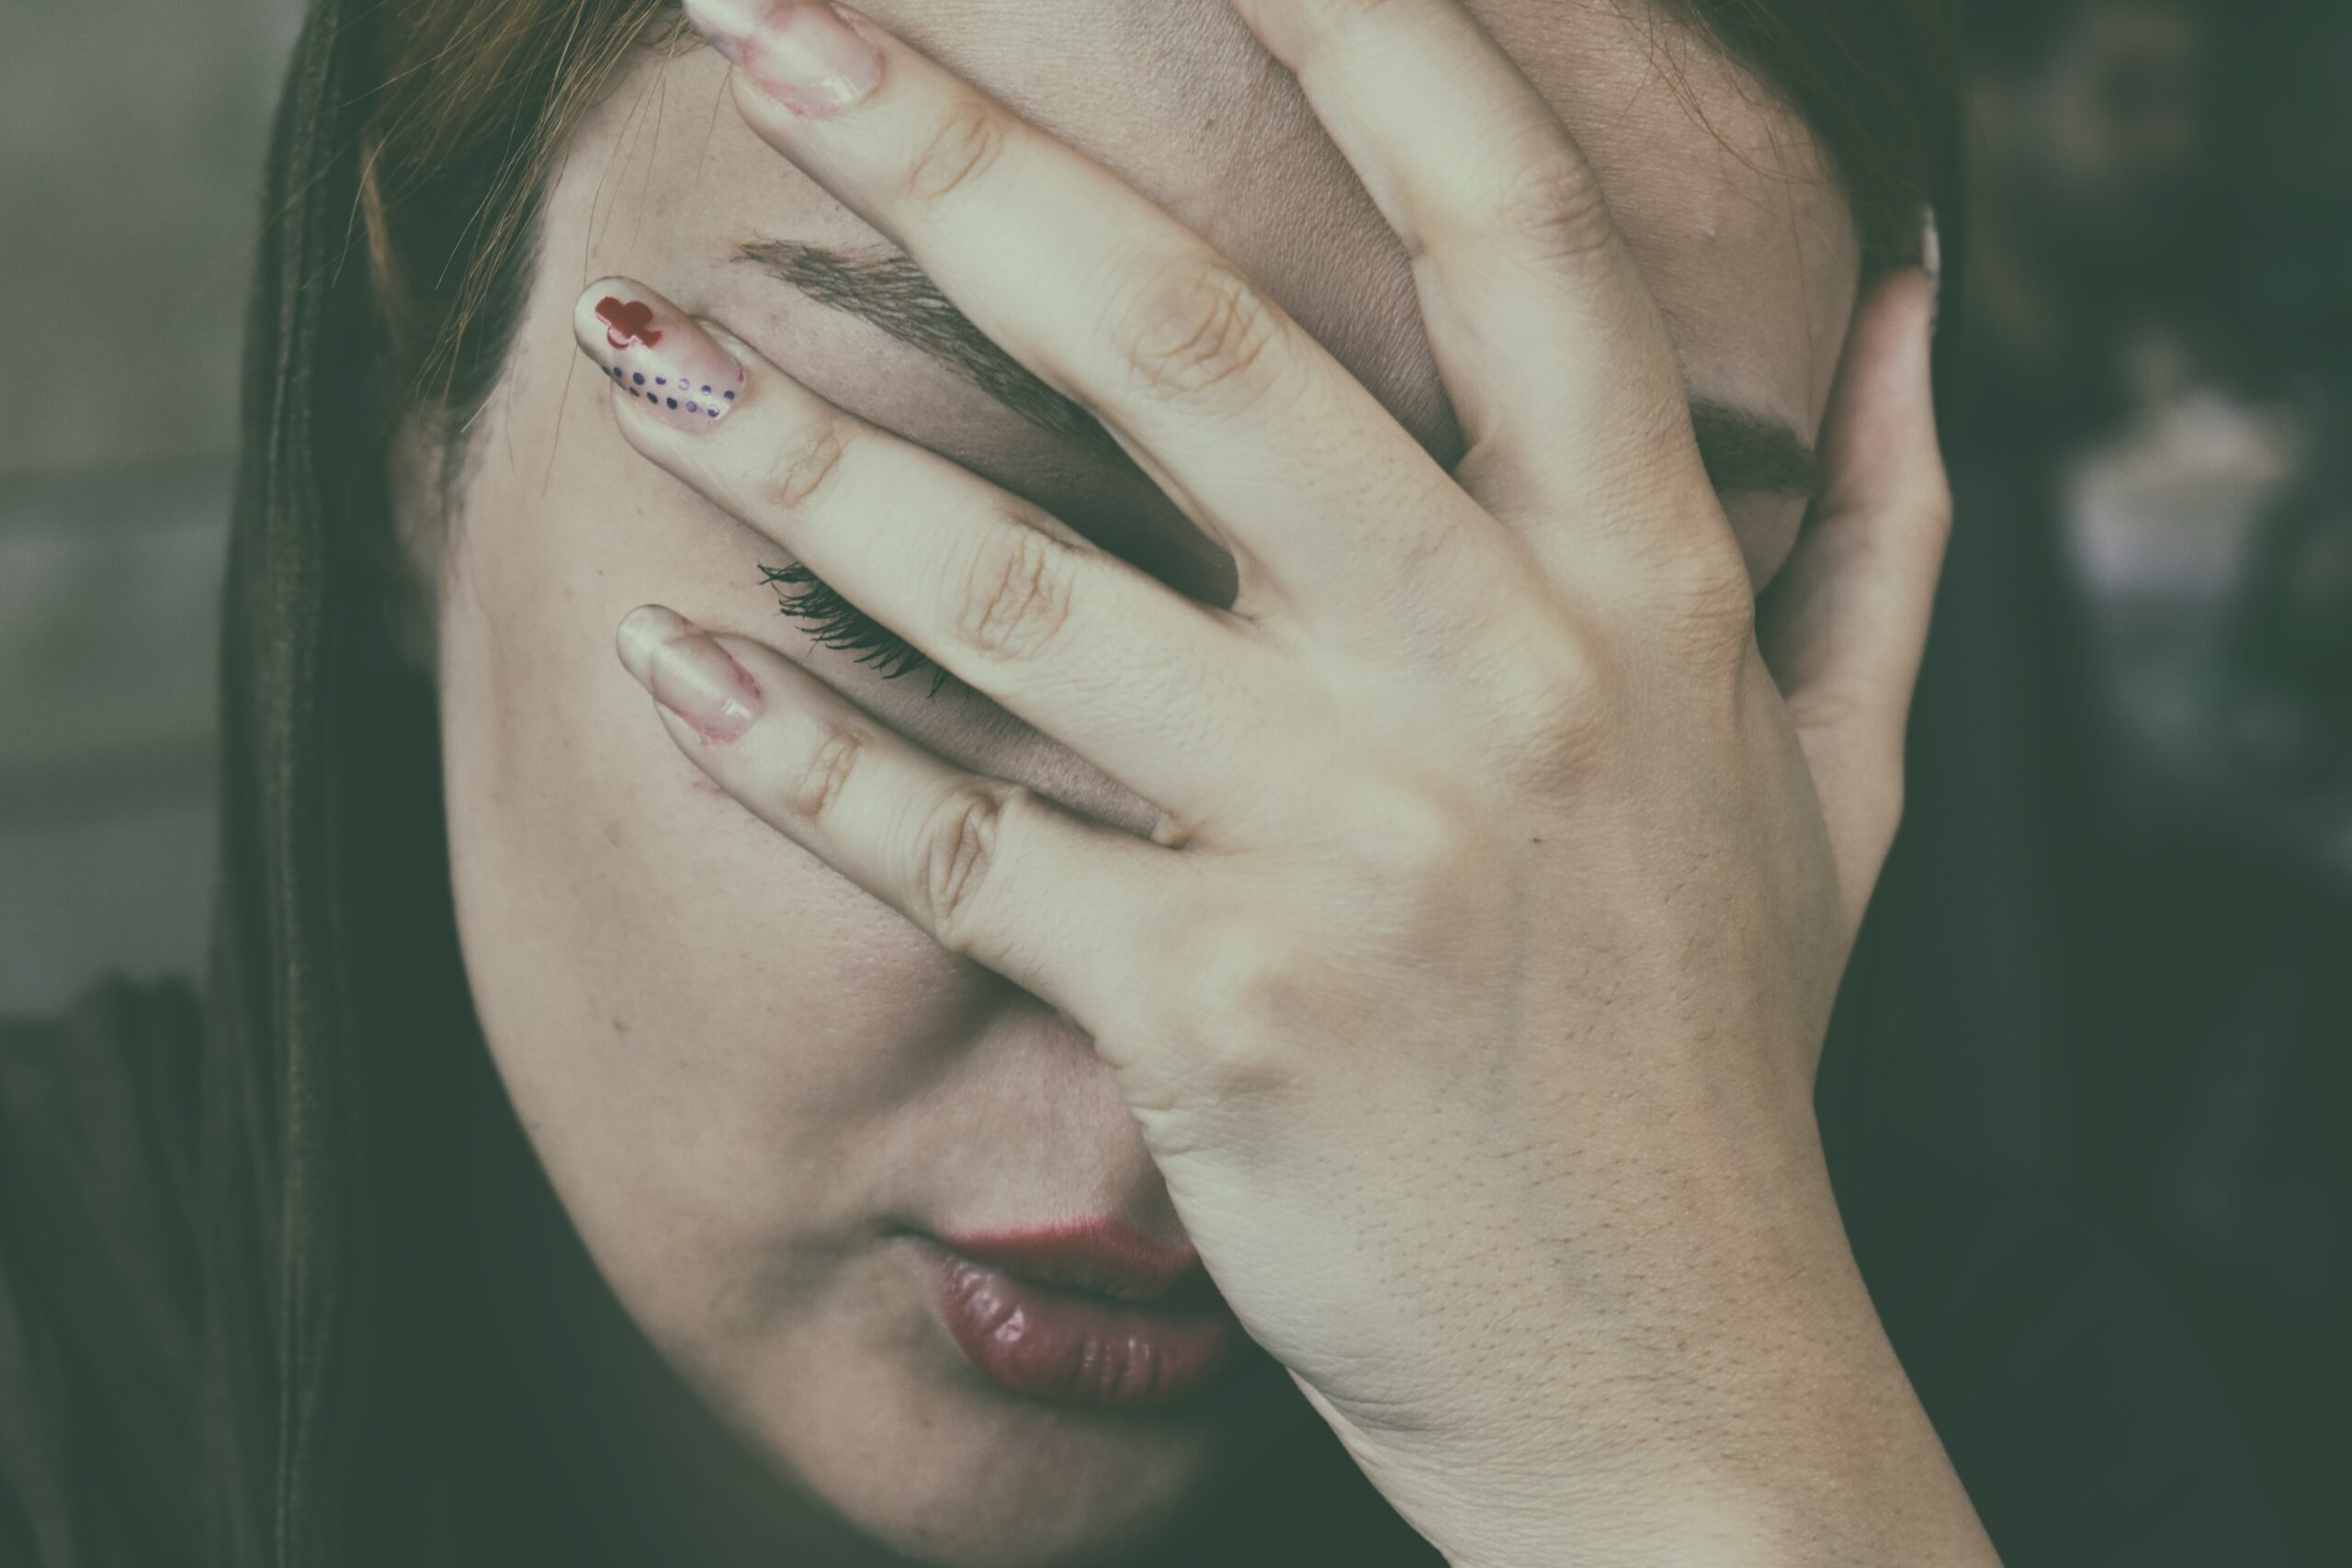 Rates of anxiety have risen among young women